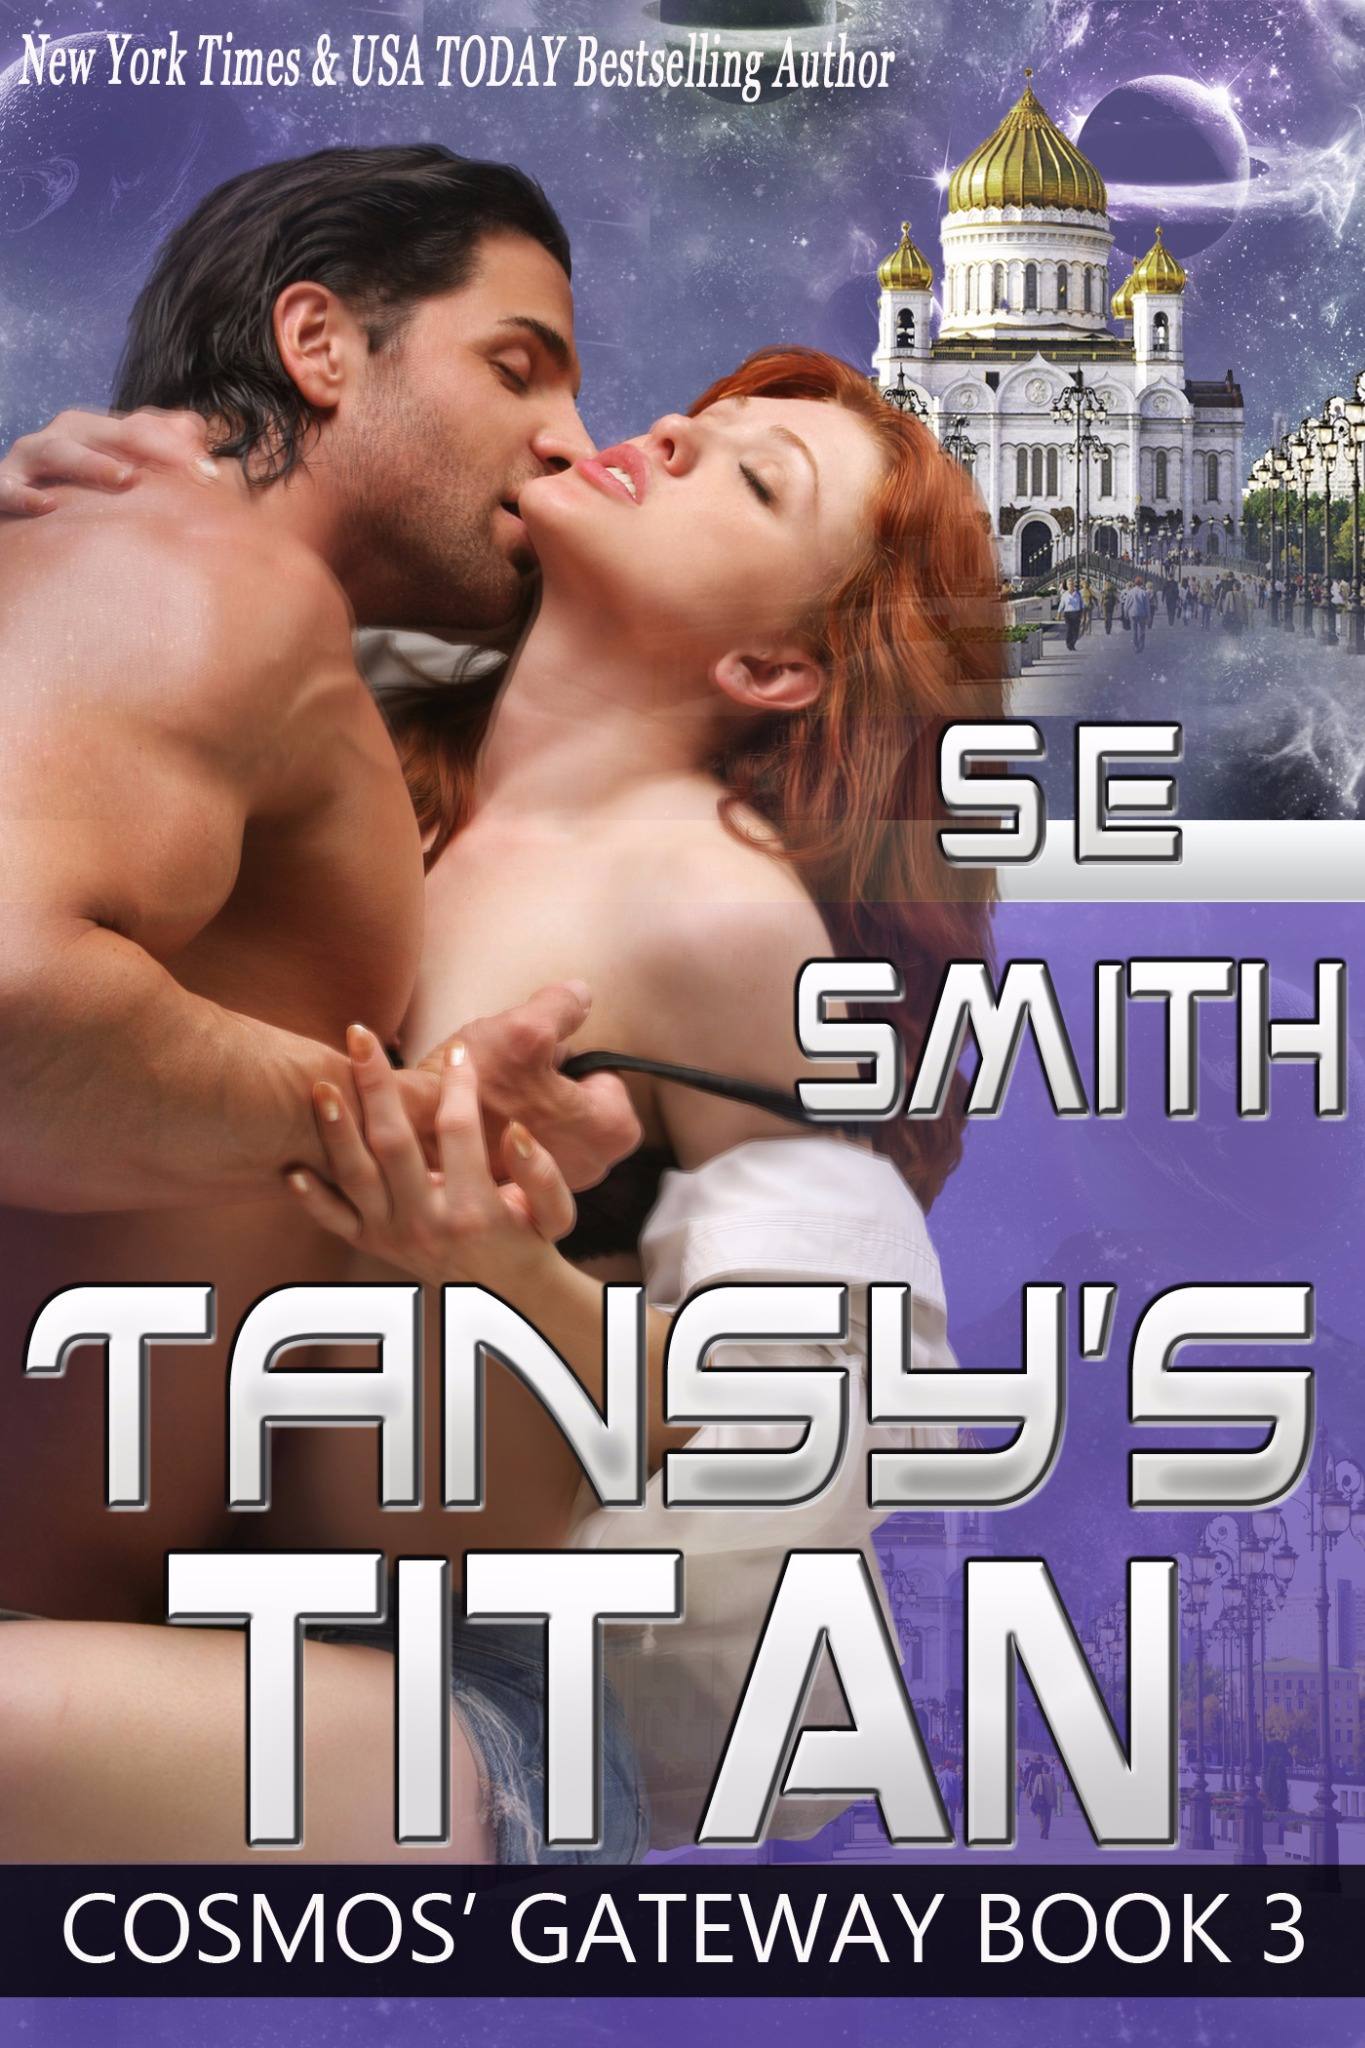 Tansy's Titan: Cosmos' Gateway Book 3 (Ebook: Kindle and epub)